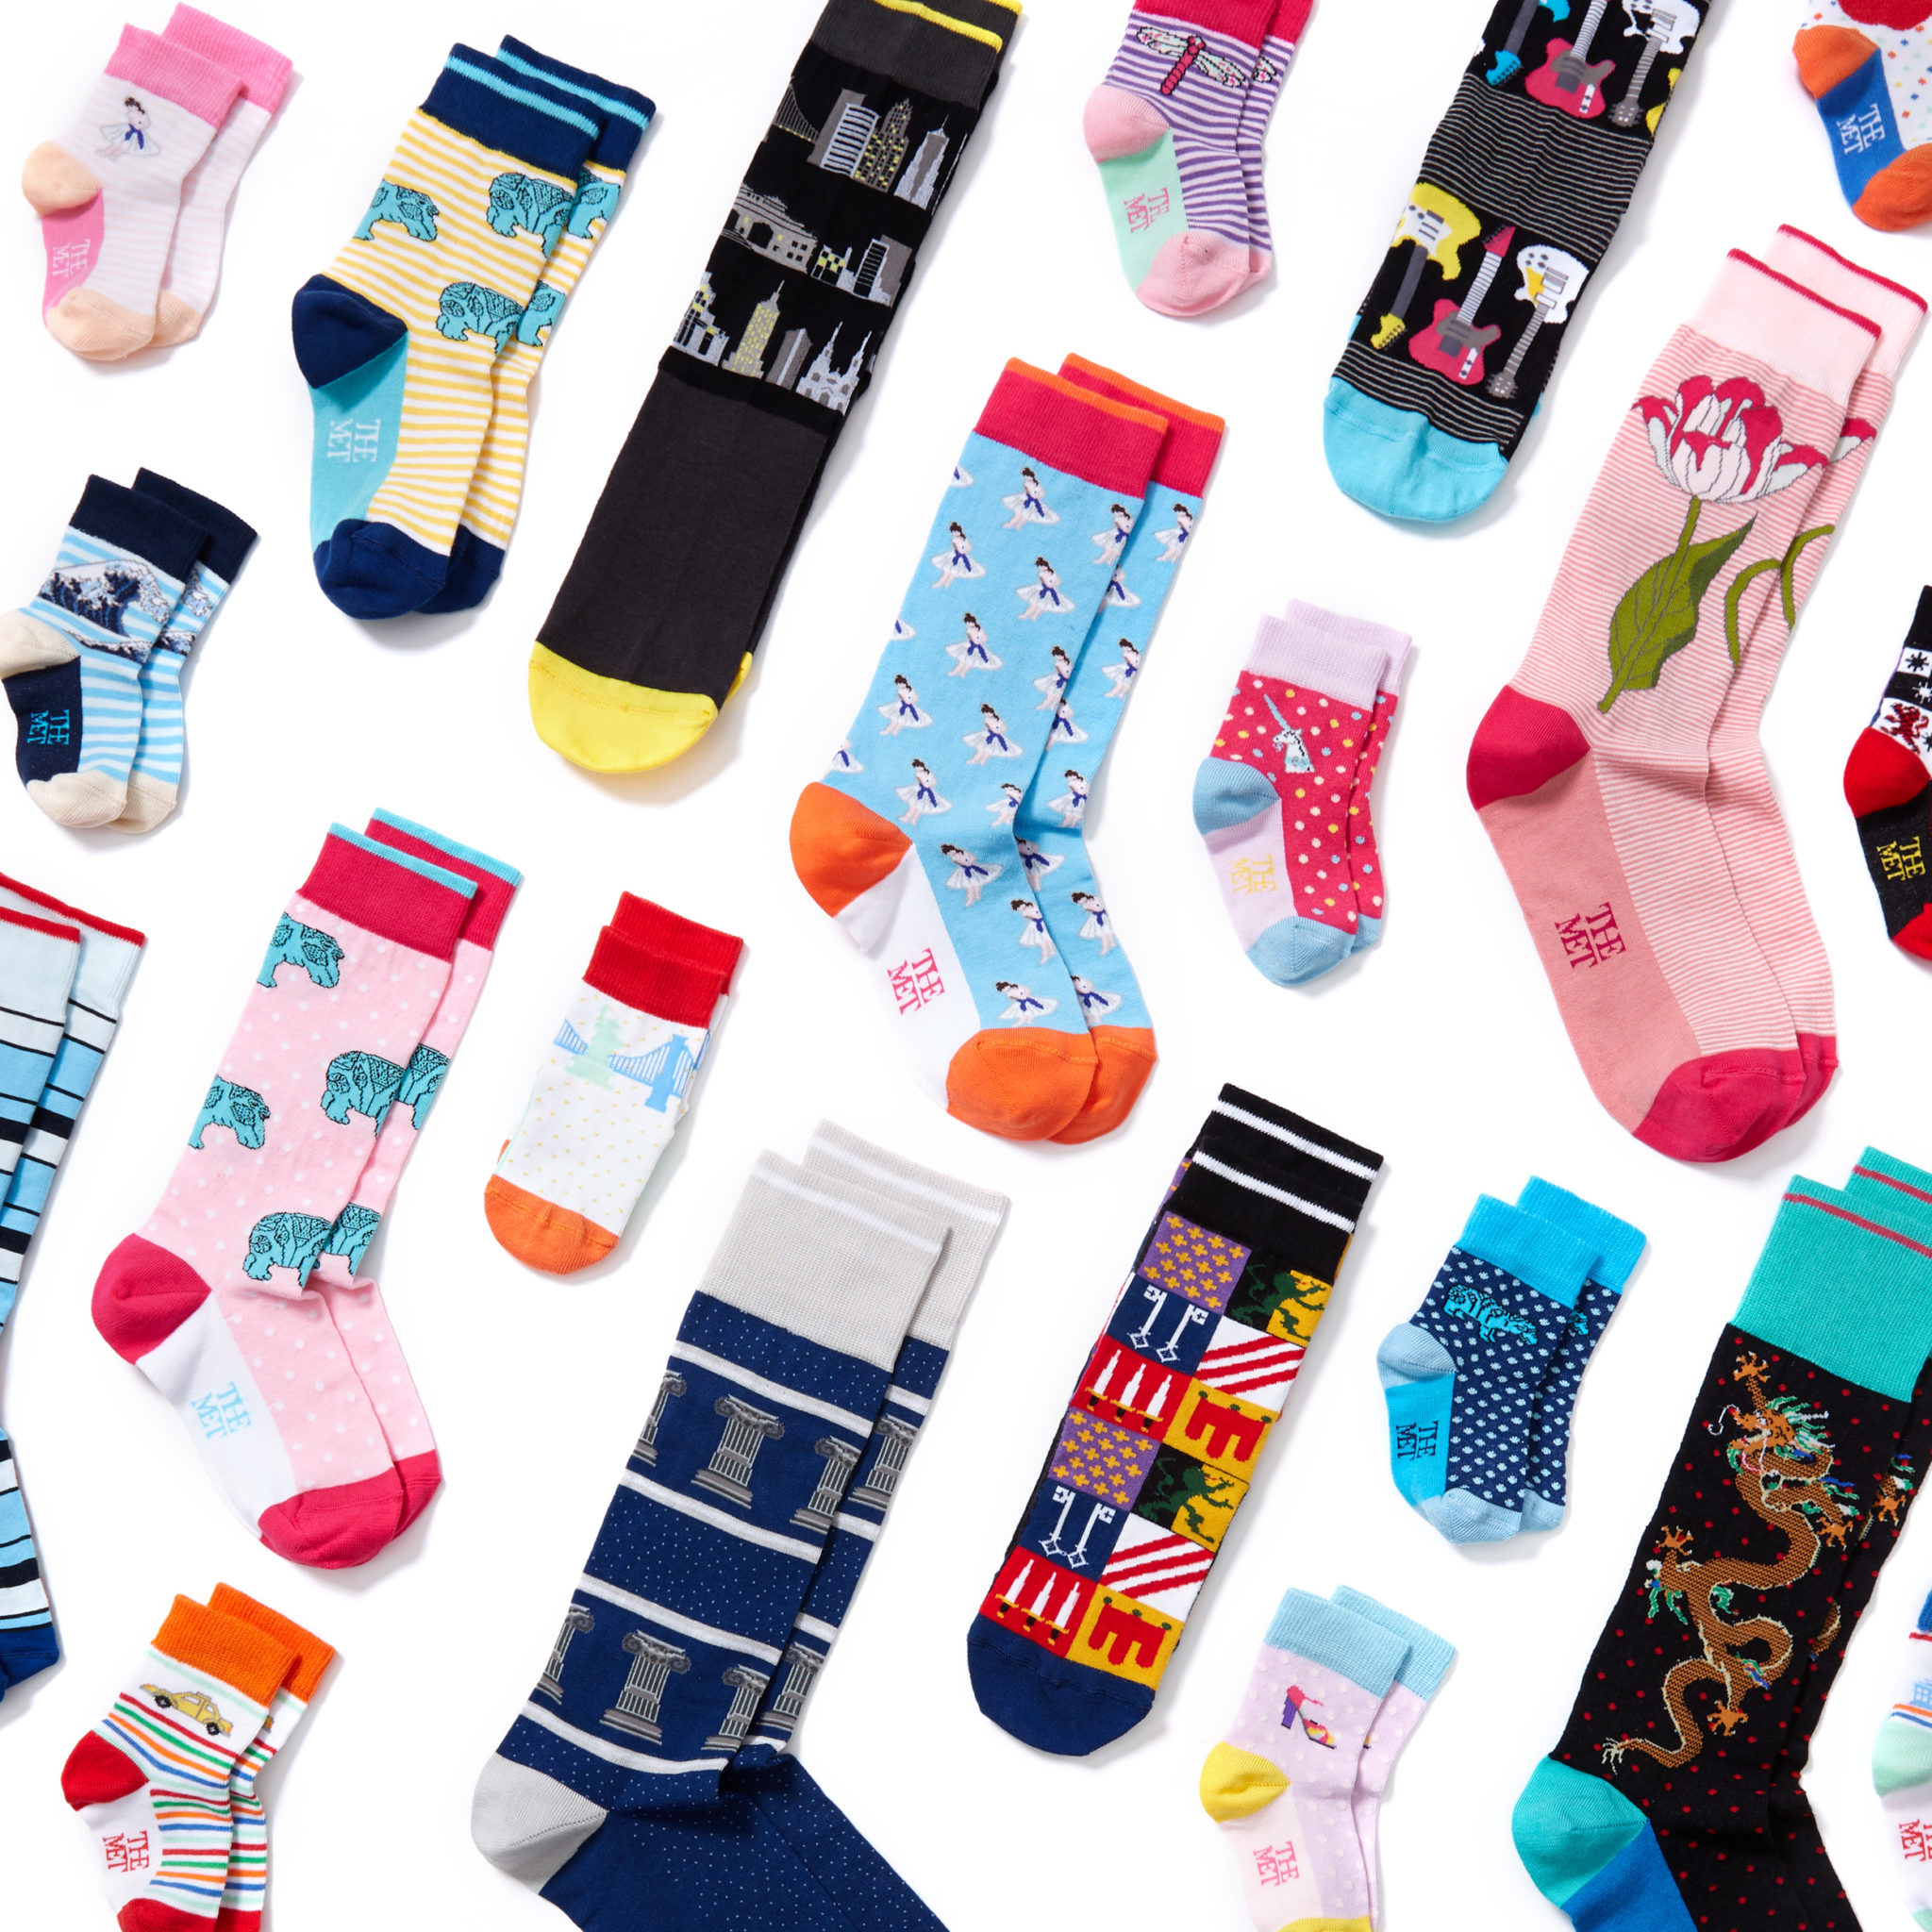 a marketing photograph of many socks styled in an angled grid on white